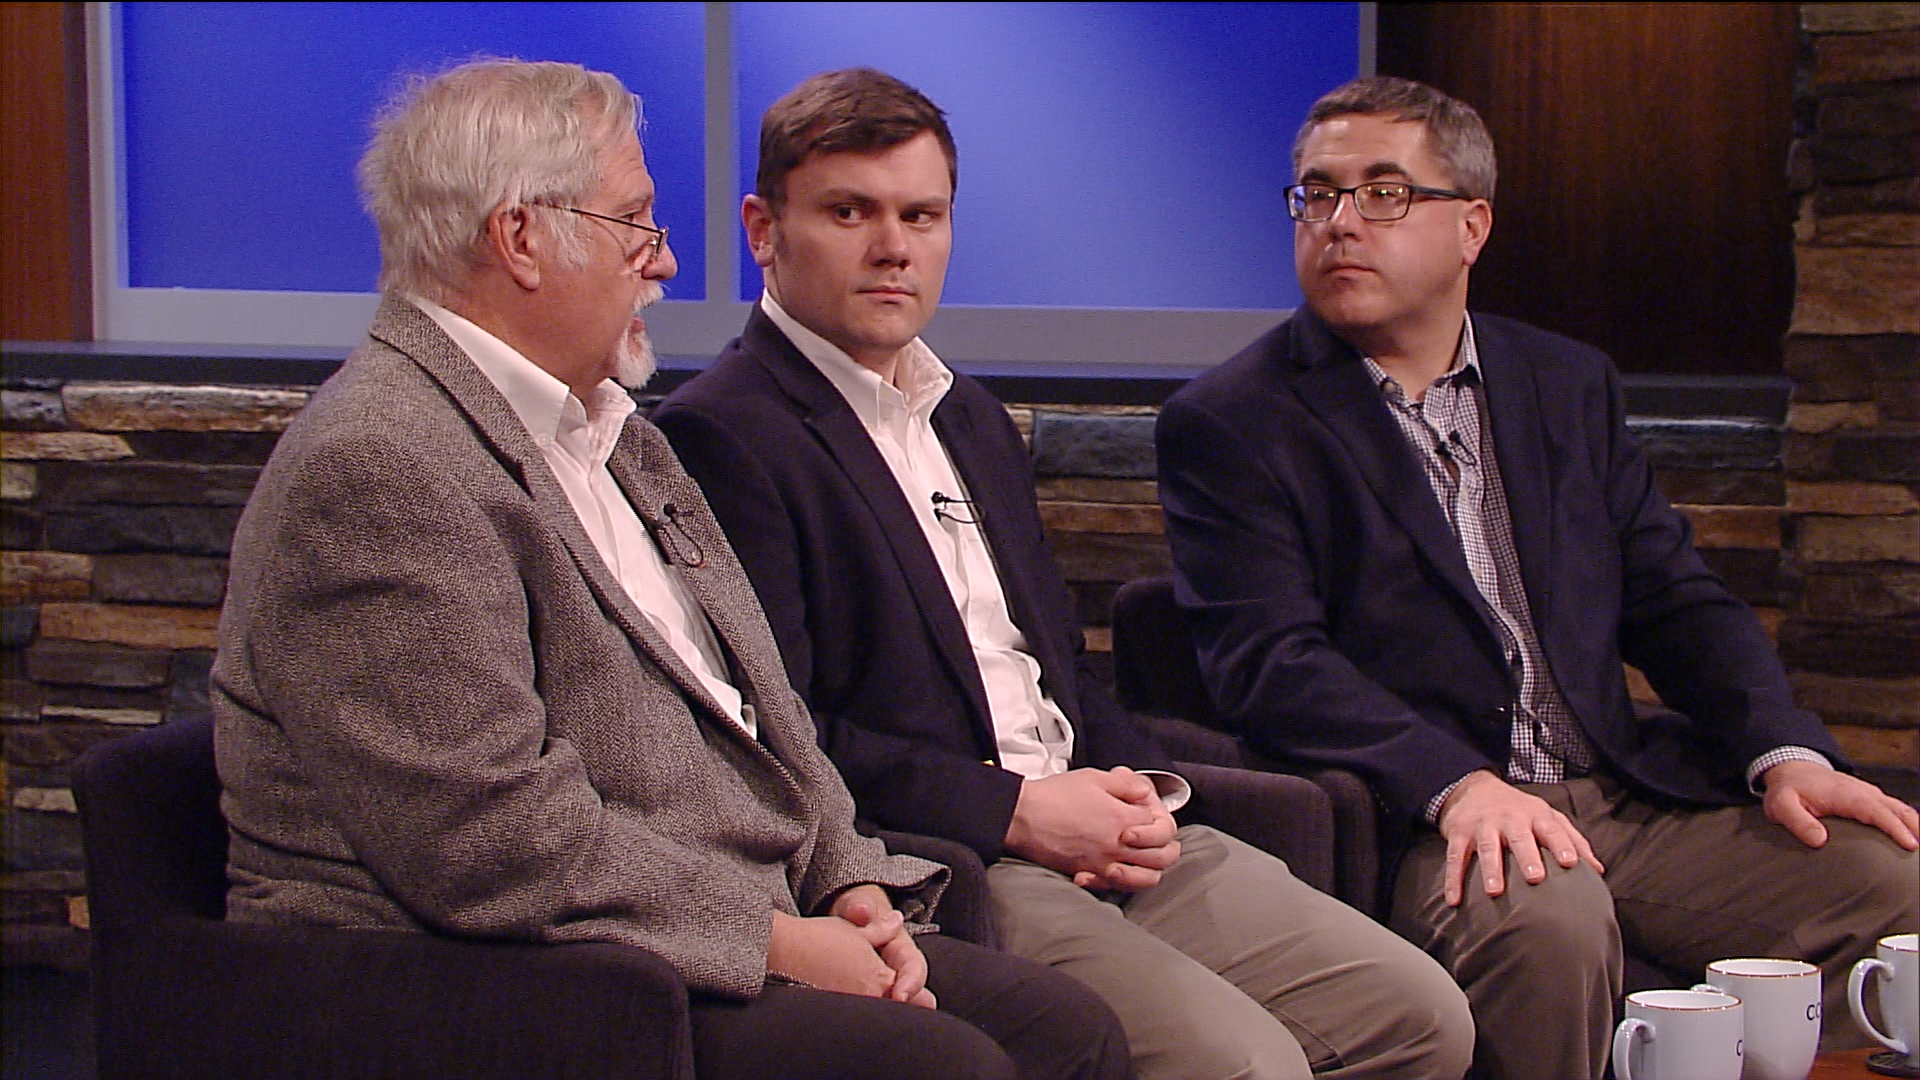 """End of 2019 Legislative Agenda Roundtable on """"Connecting Point"""""""